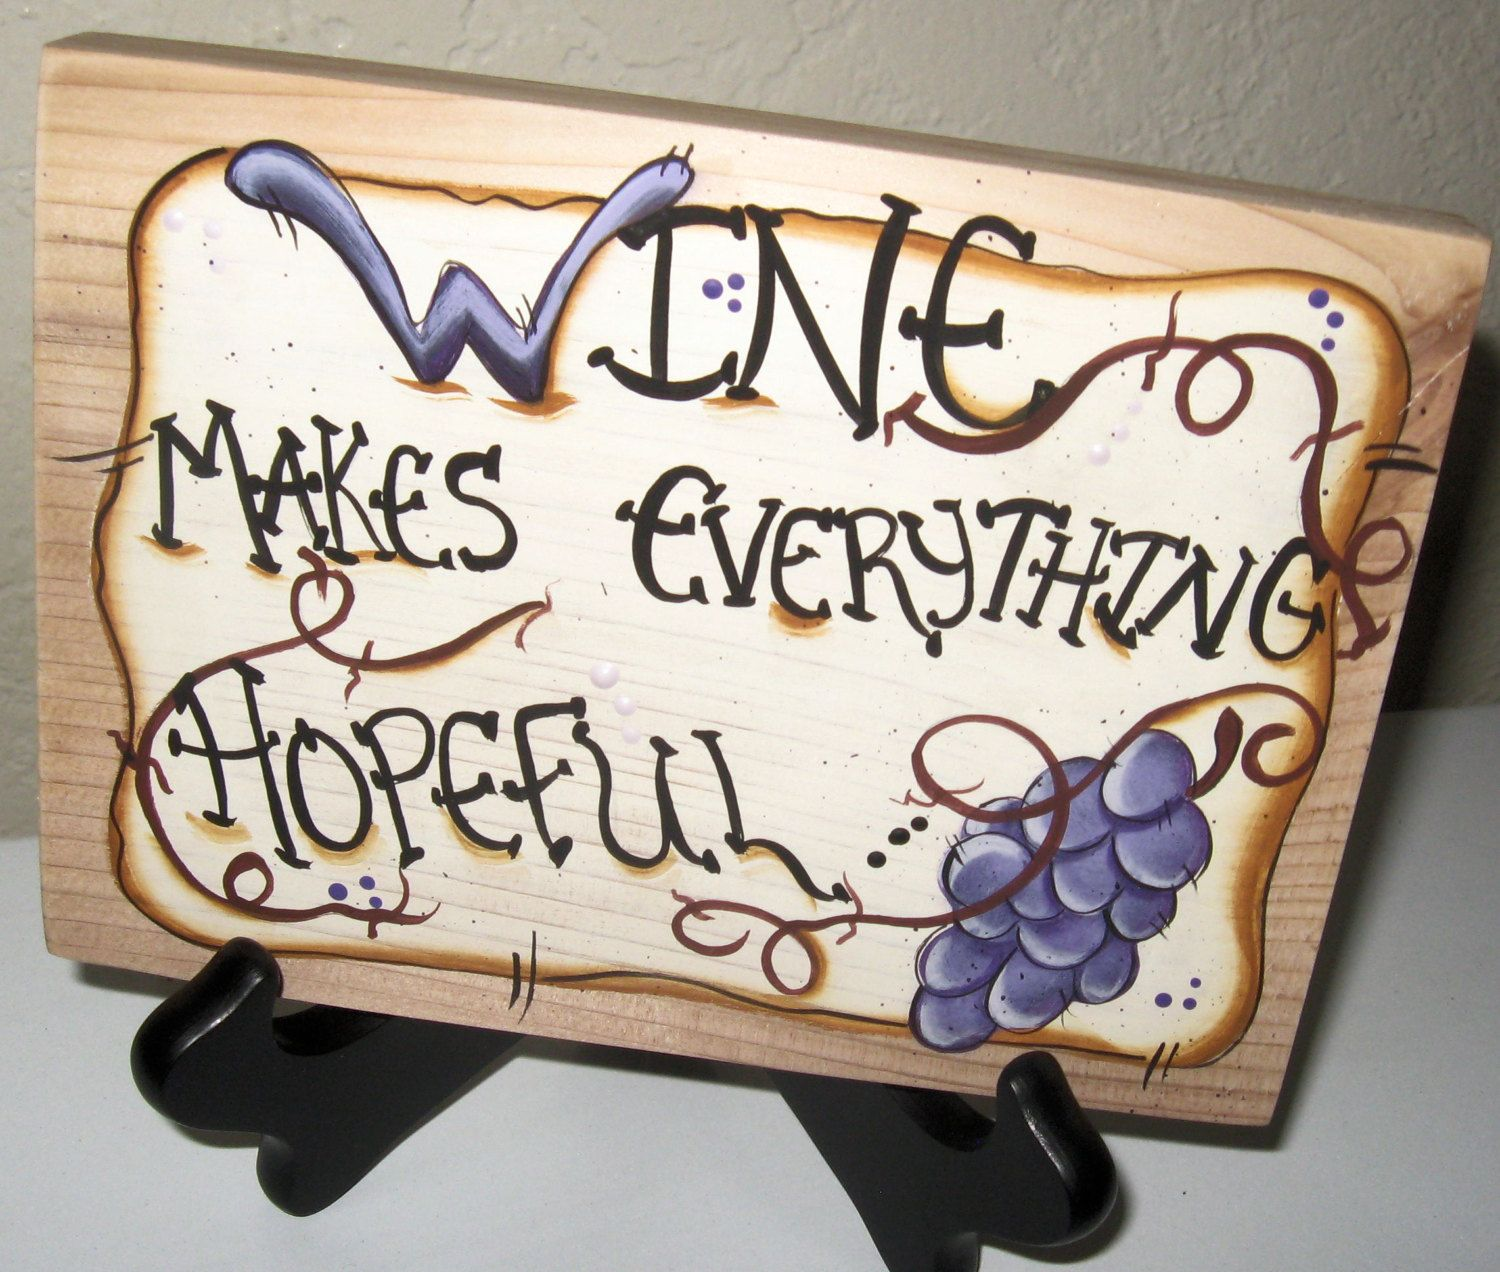 Quirky Wood Signs,Wine Signs,Wine Decor,Country Wine Decor,Wine Gifts,Trendy Signs,Trendy Pantry Signs,Wine Signs,Painted Wood Signs,Wine by jusbcuz on Etsy